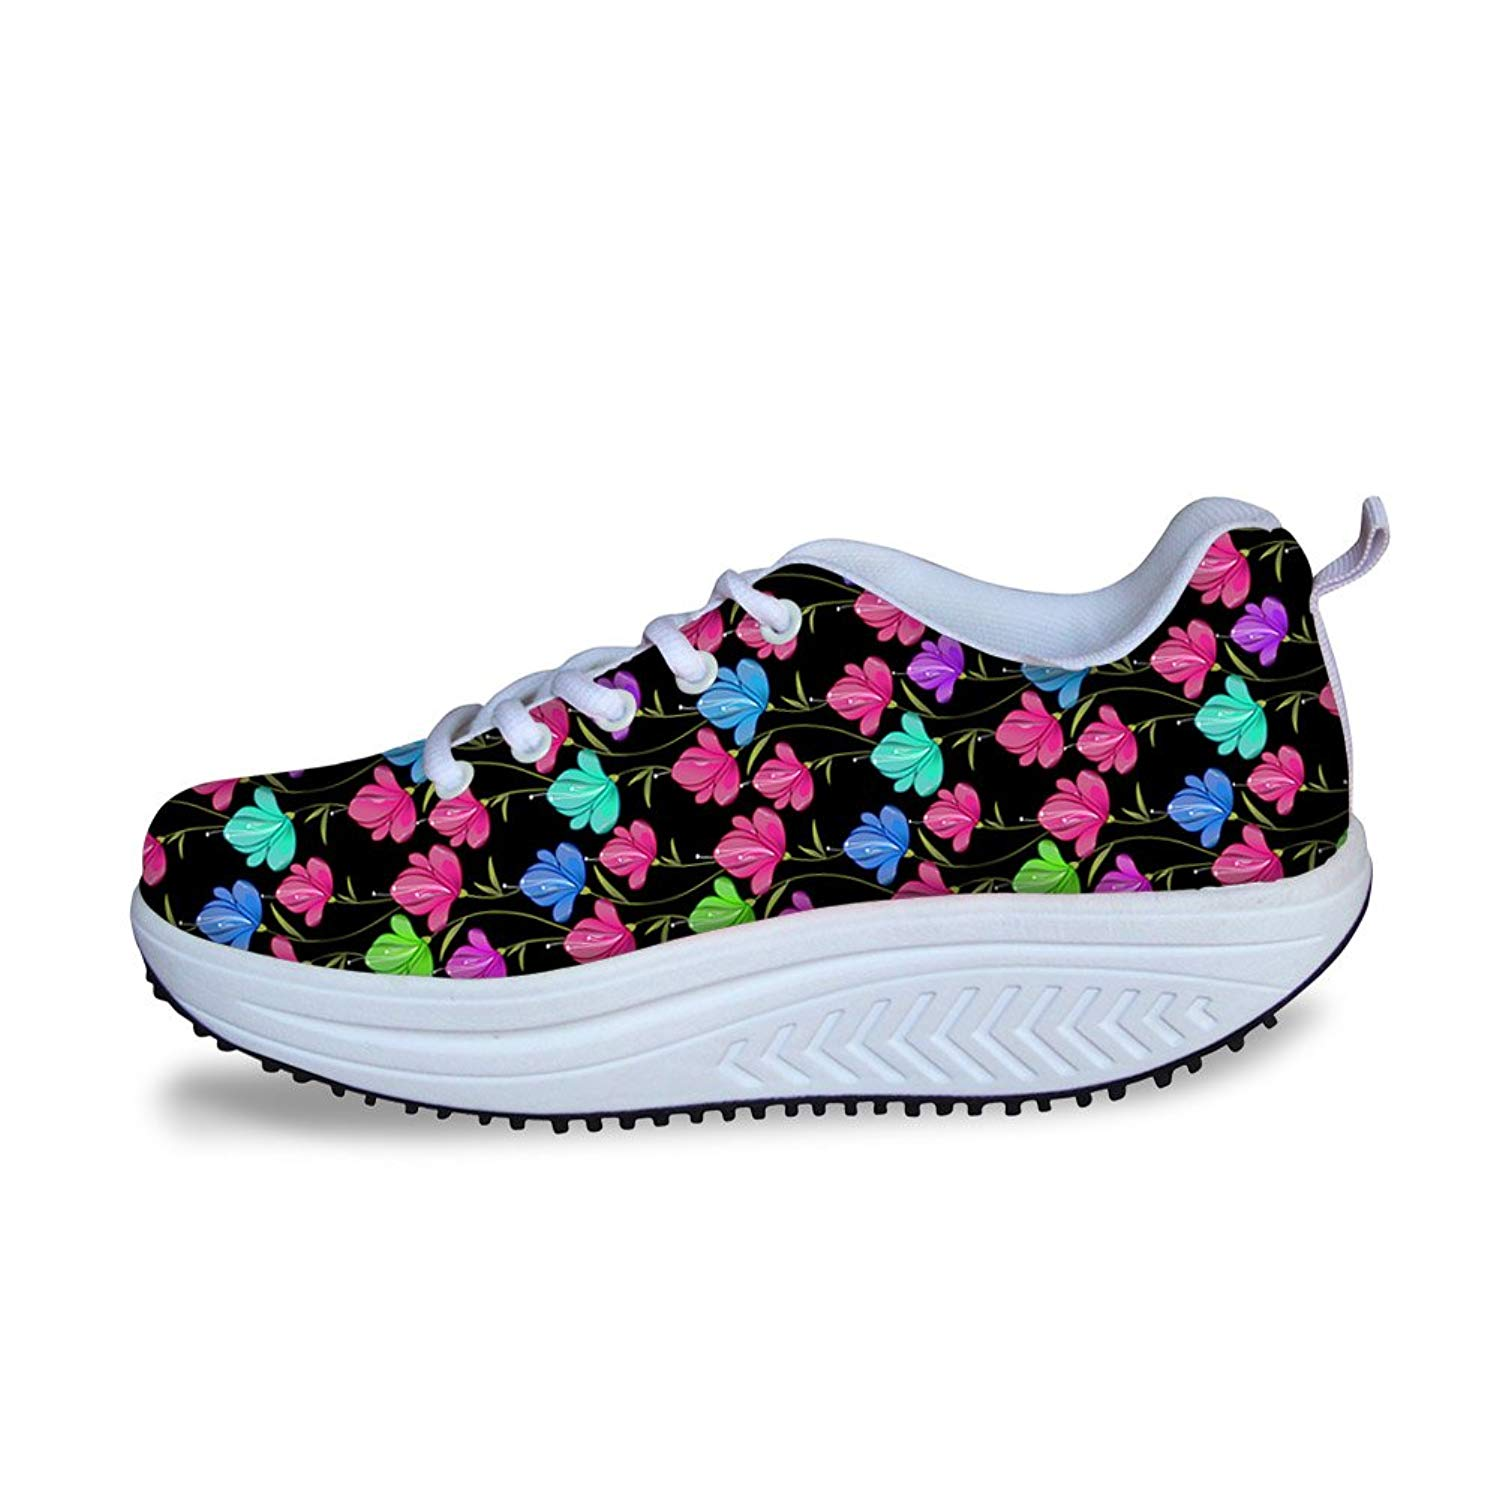 c01d44f79a498 Cheap New Balance Toning Shoes, find New Balance Toning Shoes deals ...